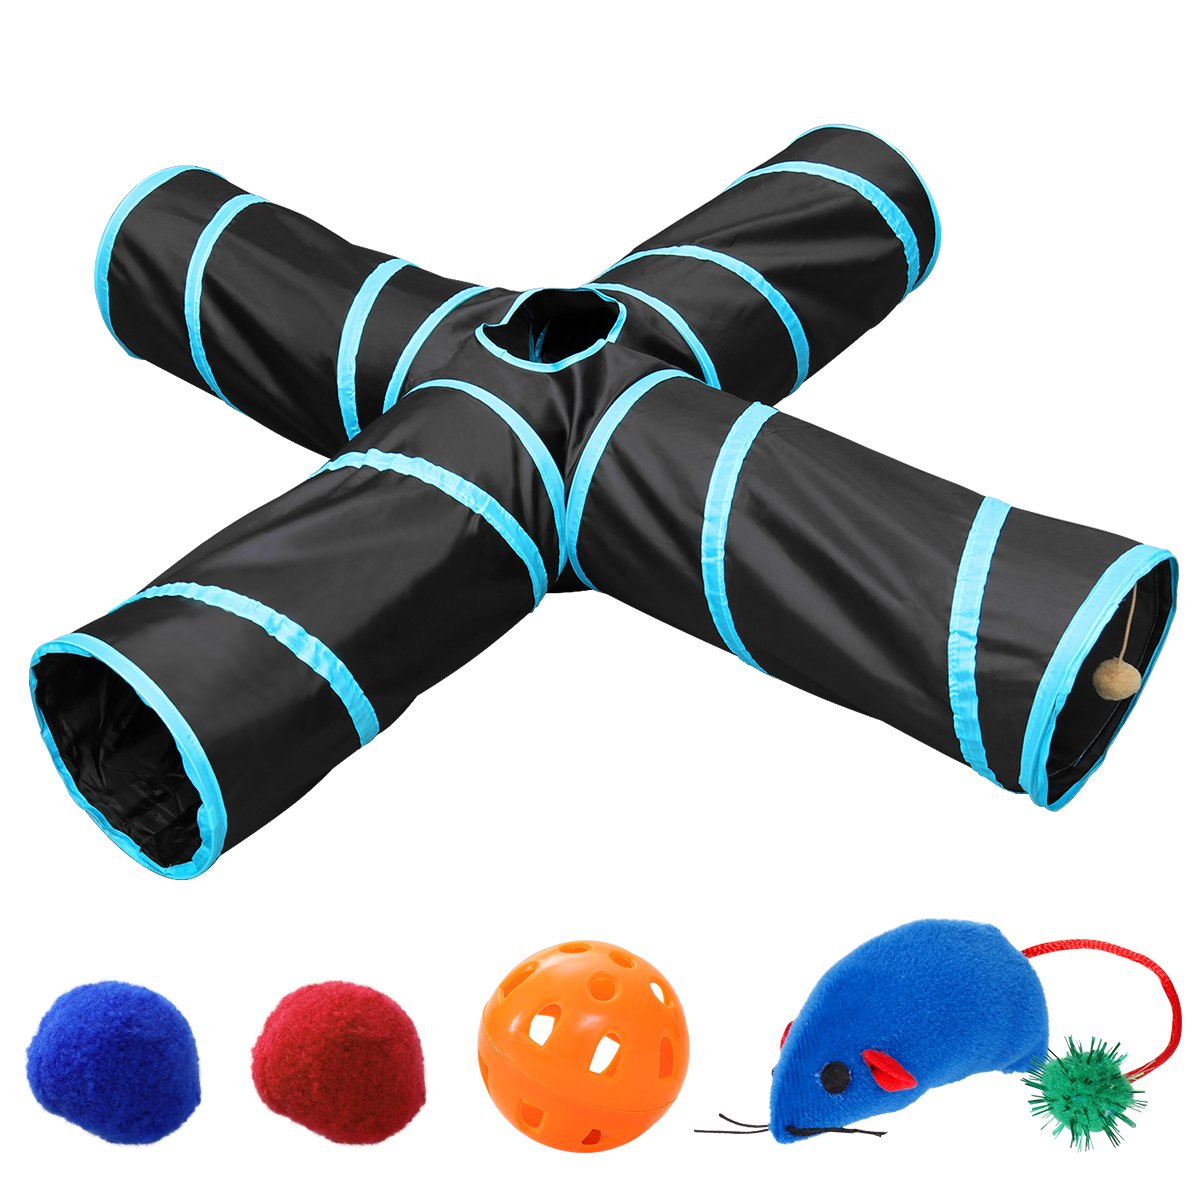 UEETEK Pet Cat Tunnel, Collapsible 4 Way Cat Play Tunnel Toy with 4 Extra Cat Toys Tube Fun for Puppy, Kitty, Kitten, Rabbit by UEETEK